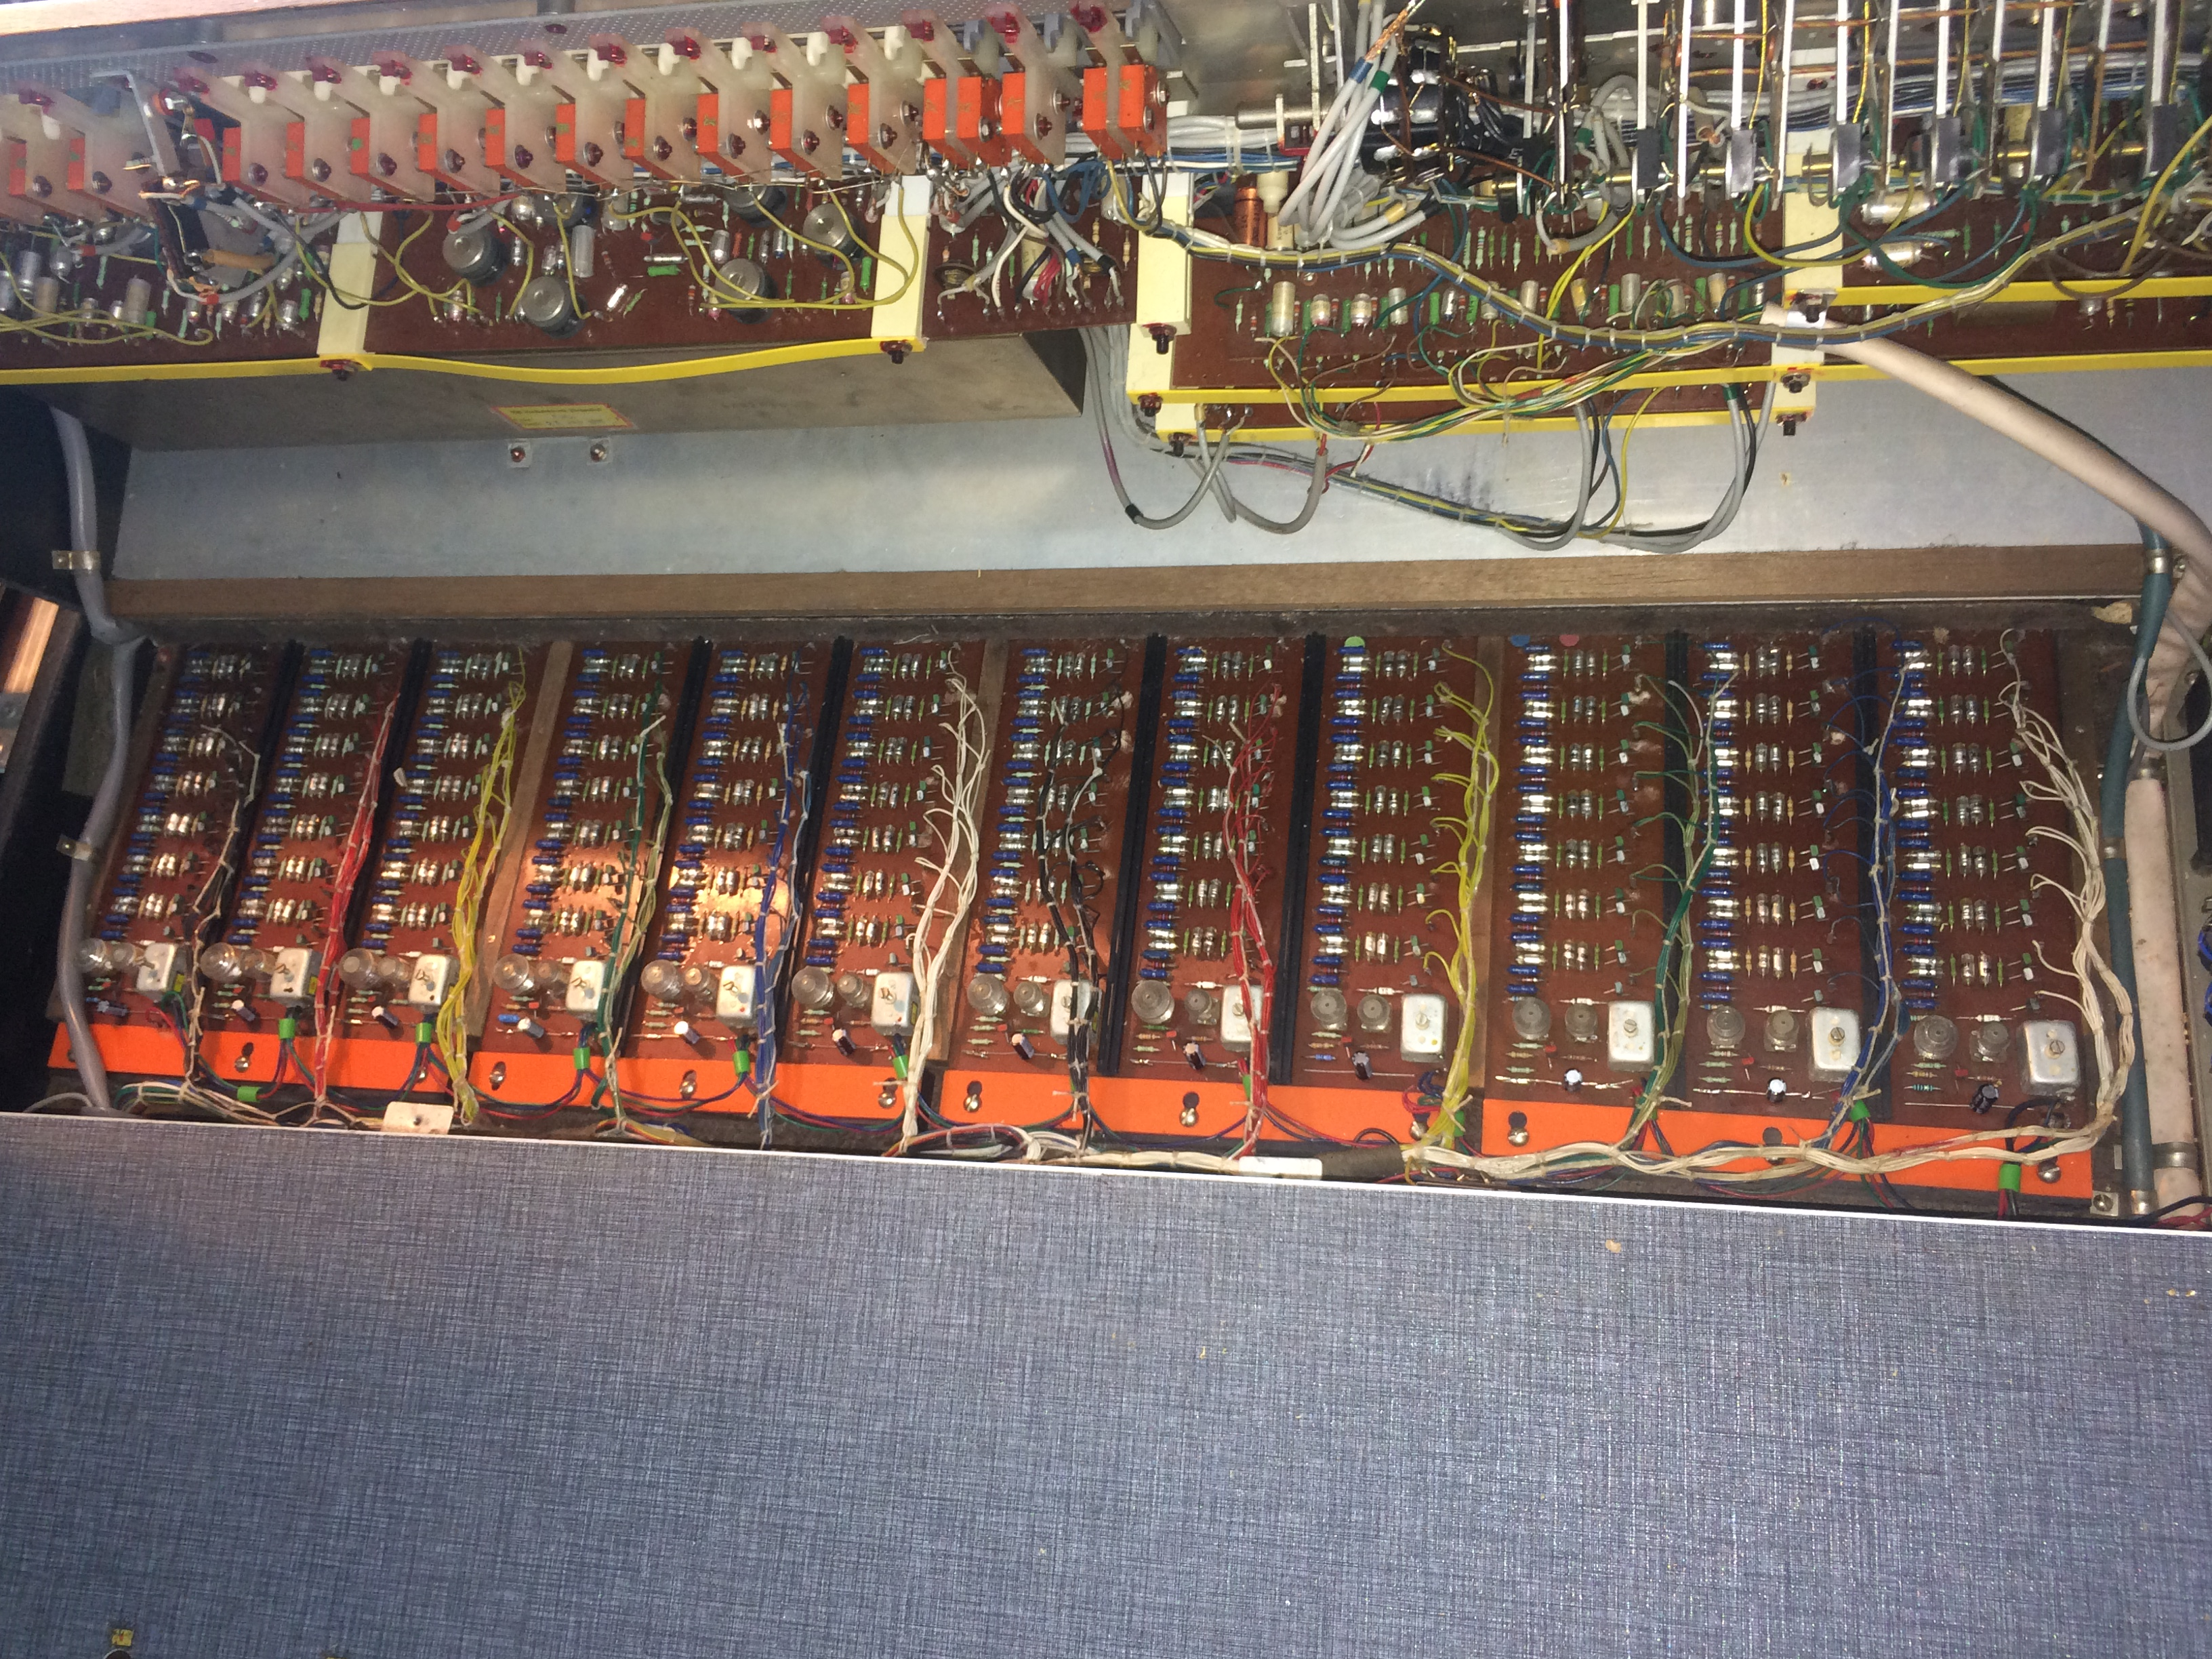 Admin Vintage Audio Repairs Tda1022 Reverberator Circuit Adjustable Coil Master Oscillator For Each Note Followed By Transistor Dividers These Circuits Are Incredibly Stable And Dont Drift Noticeably At All